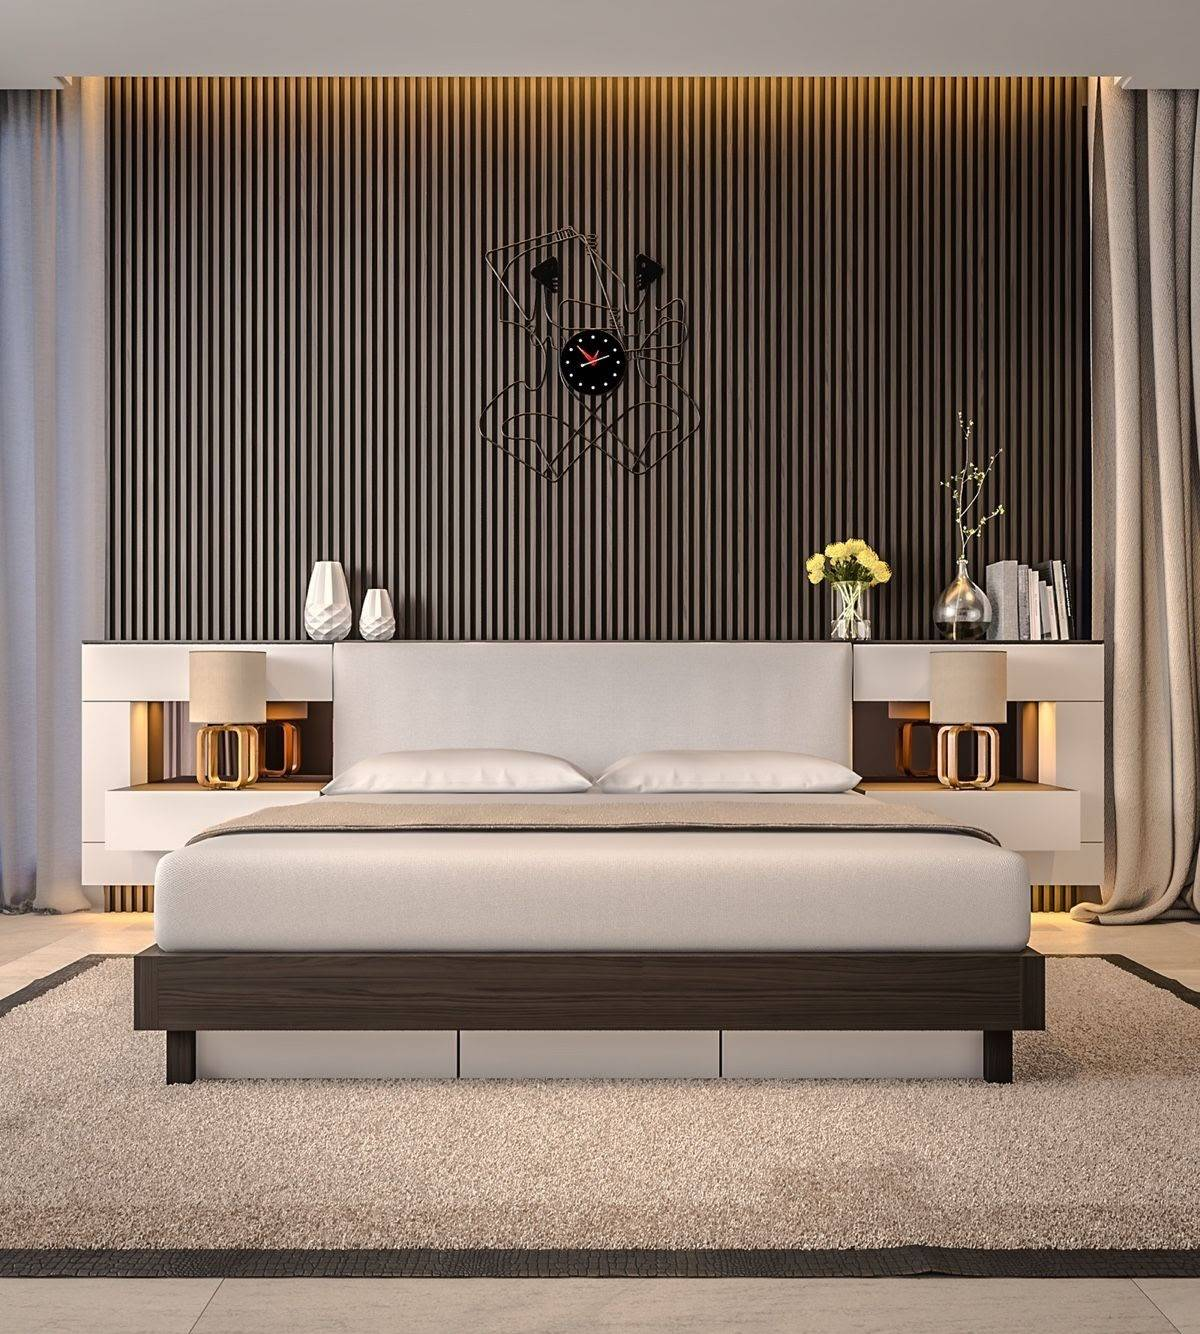 Wooden Slat Bedroom Wall Ideas You Can Try